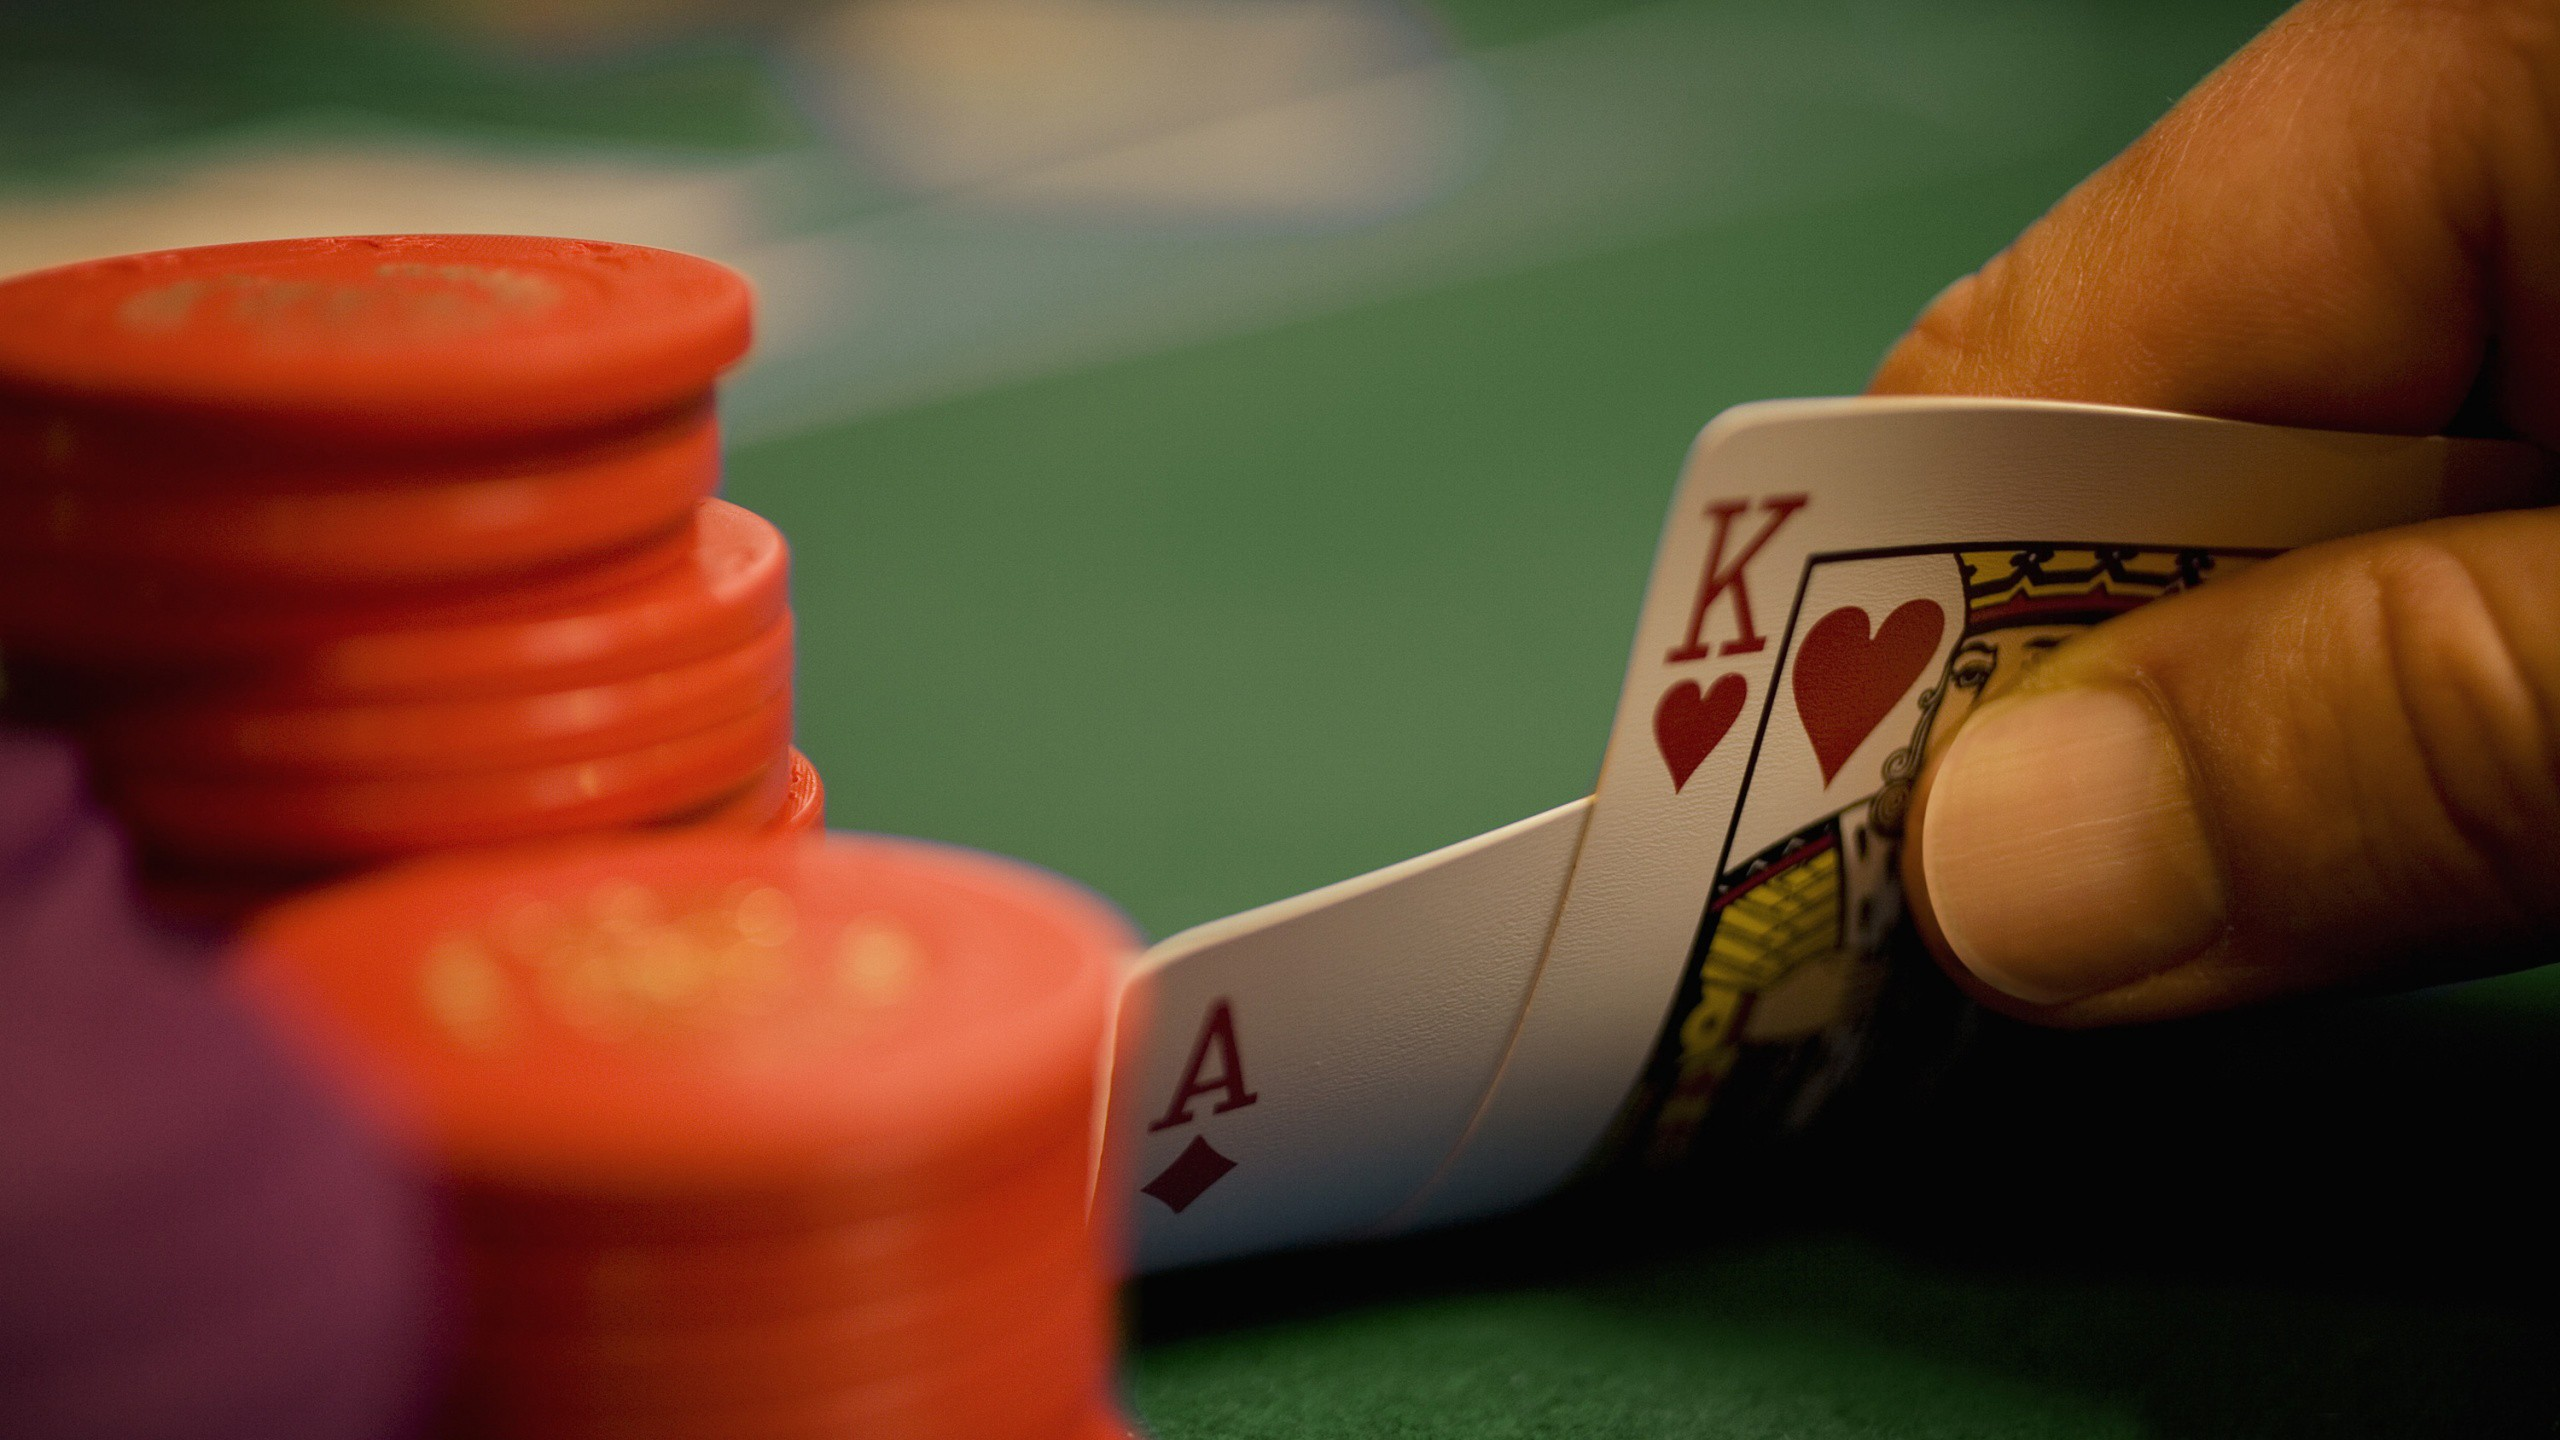 Poker table background hd - Game Poker Wallpaper